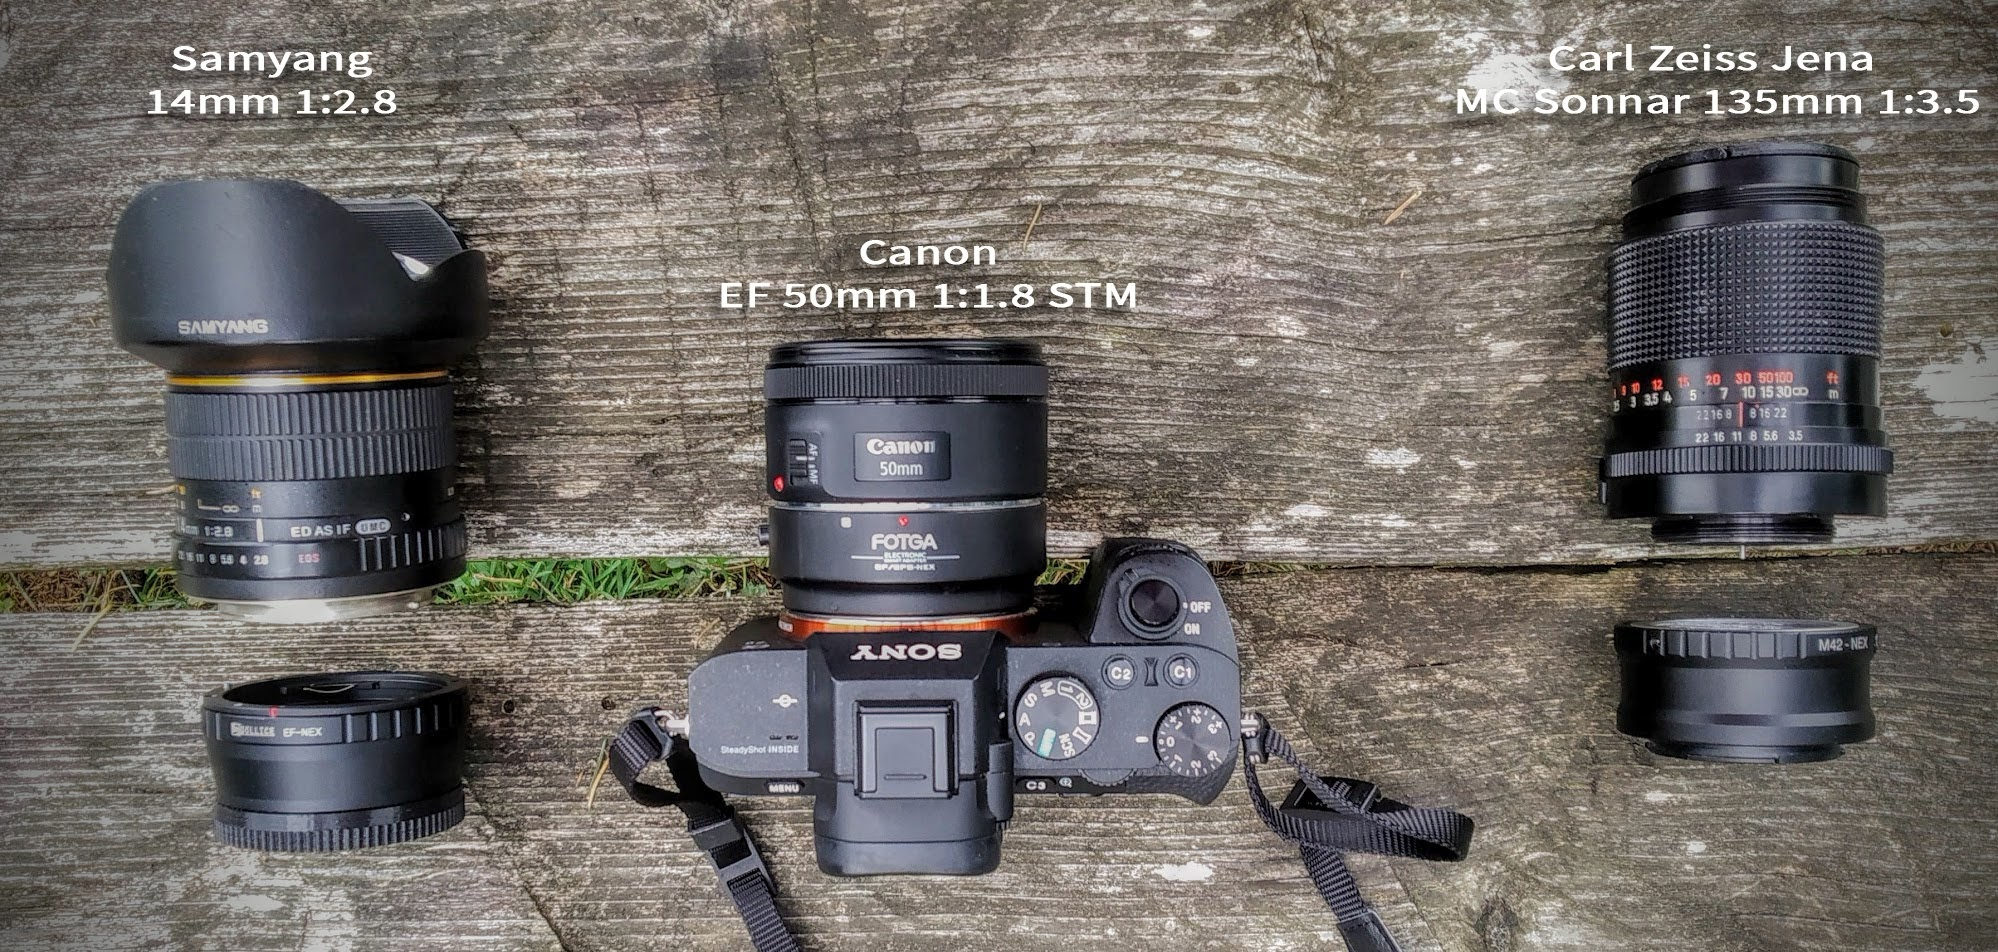 Hiking lens kit Samyang 14mm 2.8, Canon Lens 50mm 1.8 STM, Carl Zeiss 135mm 1:3.5